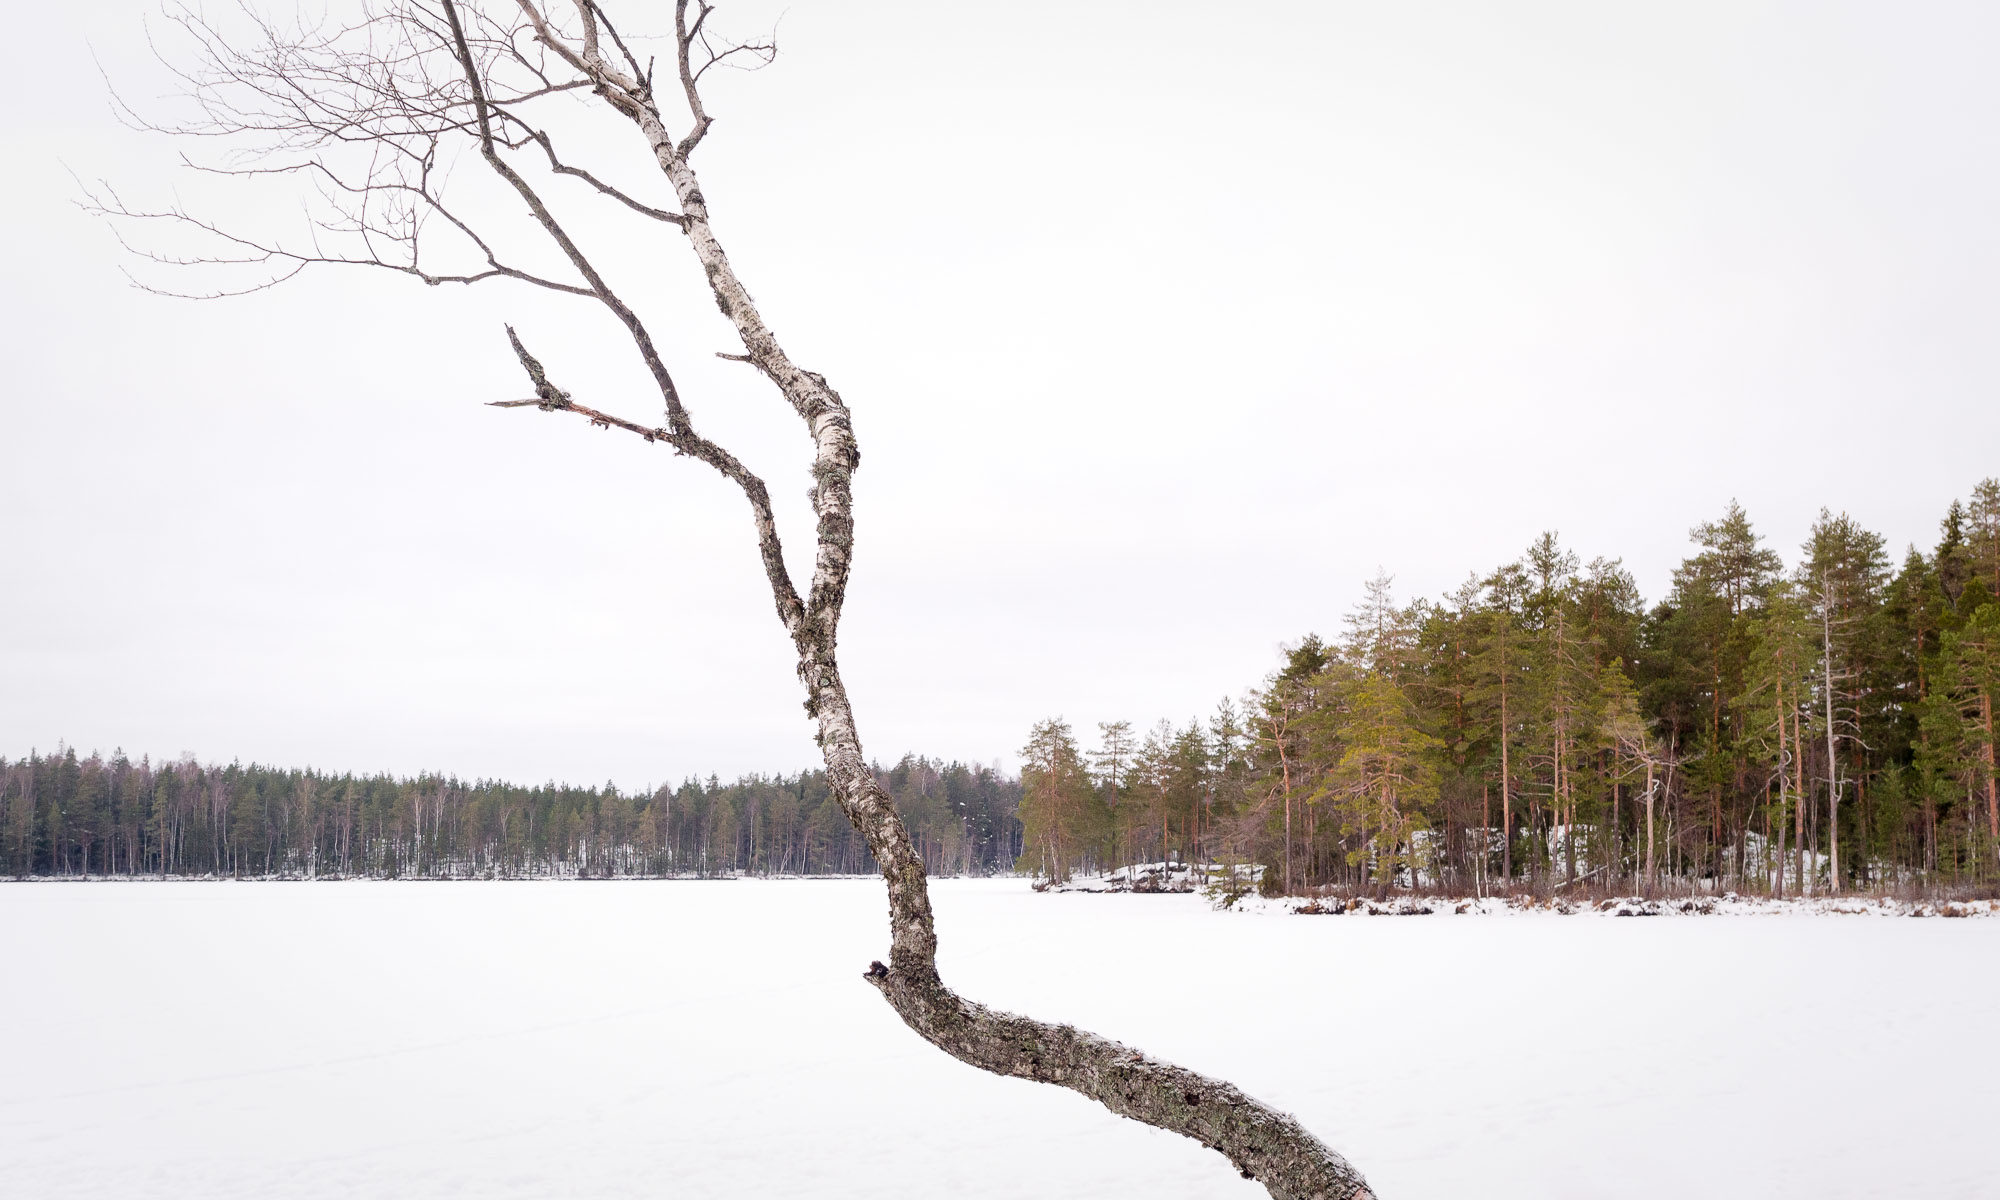 Nuuksio National Park in winter. New Year's Day in snowy forest. Finnish nature near Helsinki, Finland.